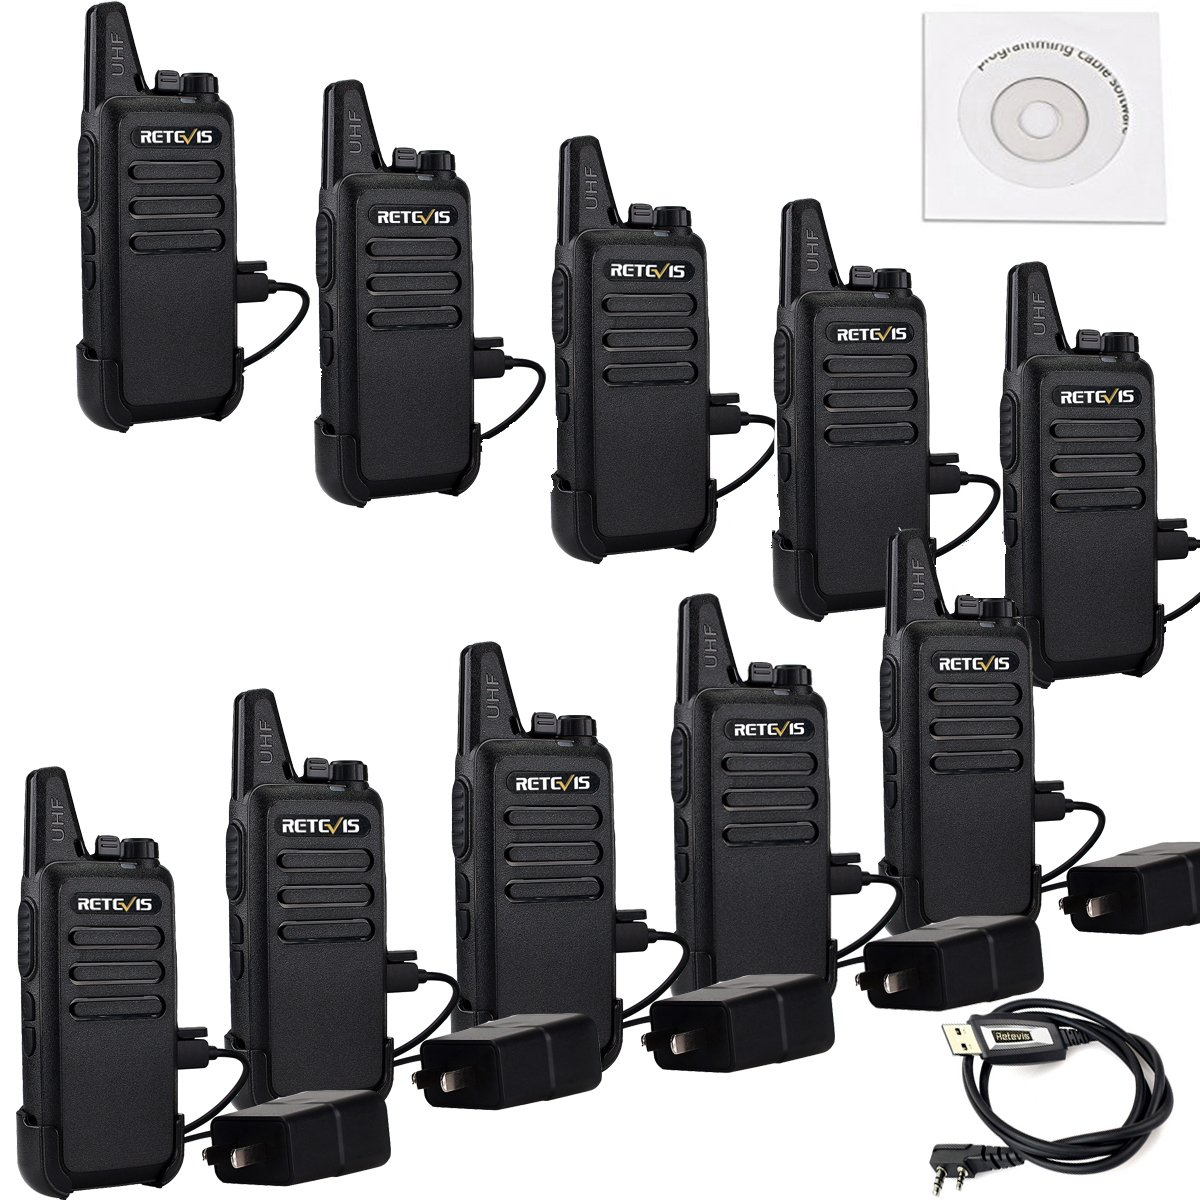 Retevis RT22 Two Way Radio 16 CH VOX CTCSS/DCS License-free Rechargeable Walkie Talkies(10 Pack) and Programming Cable by Retevis